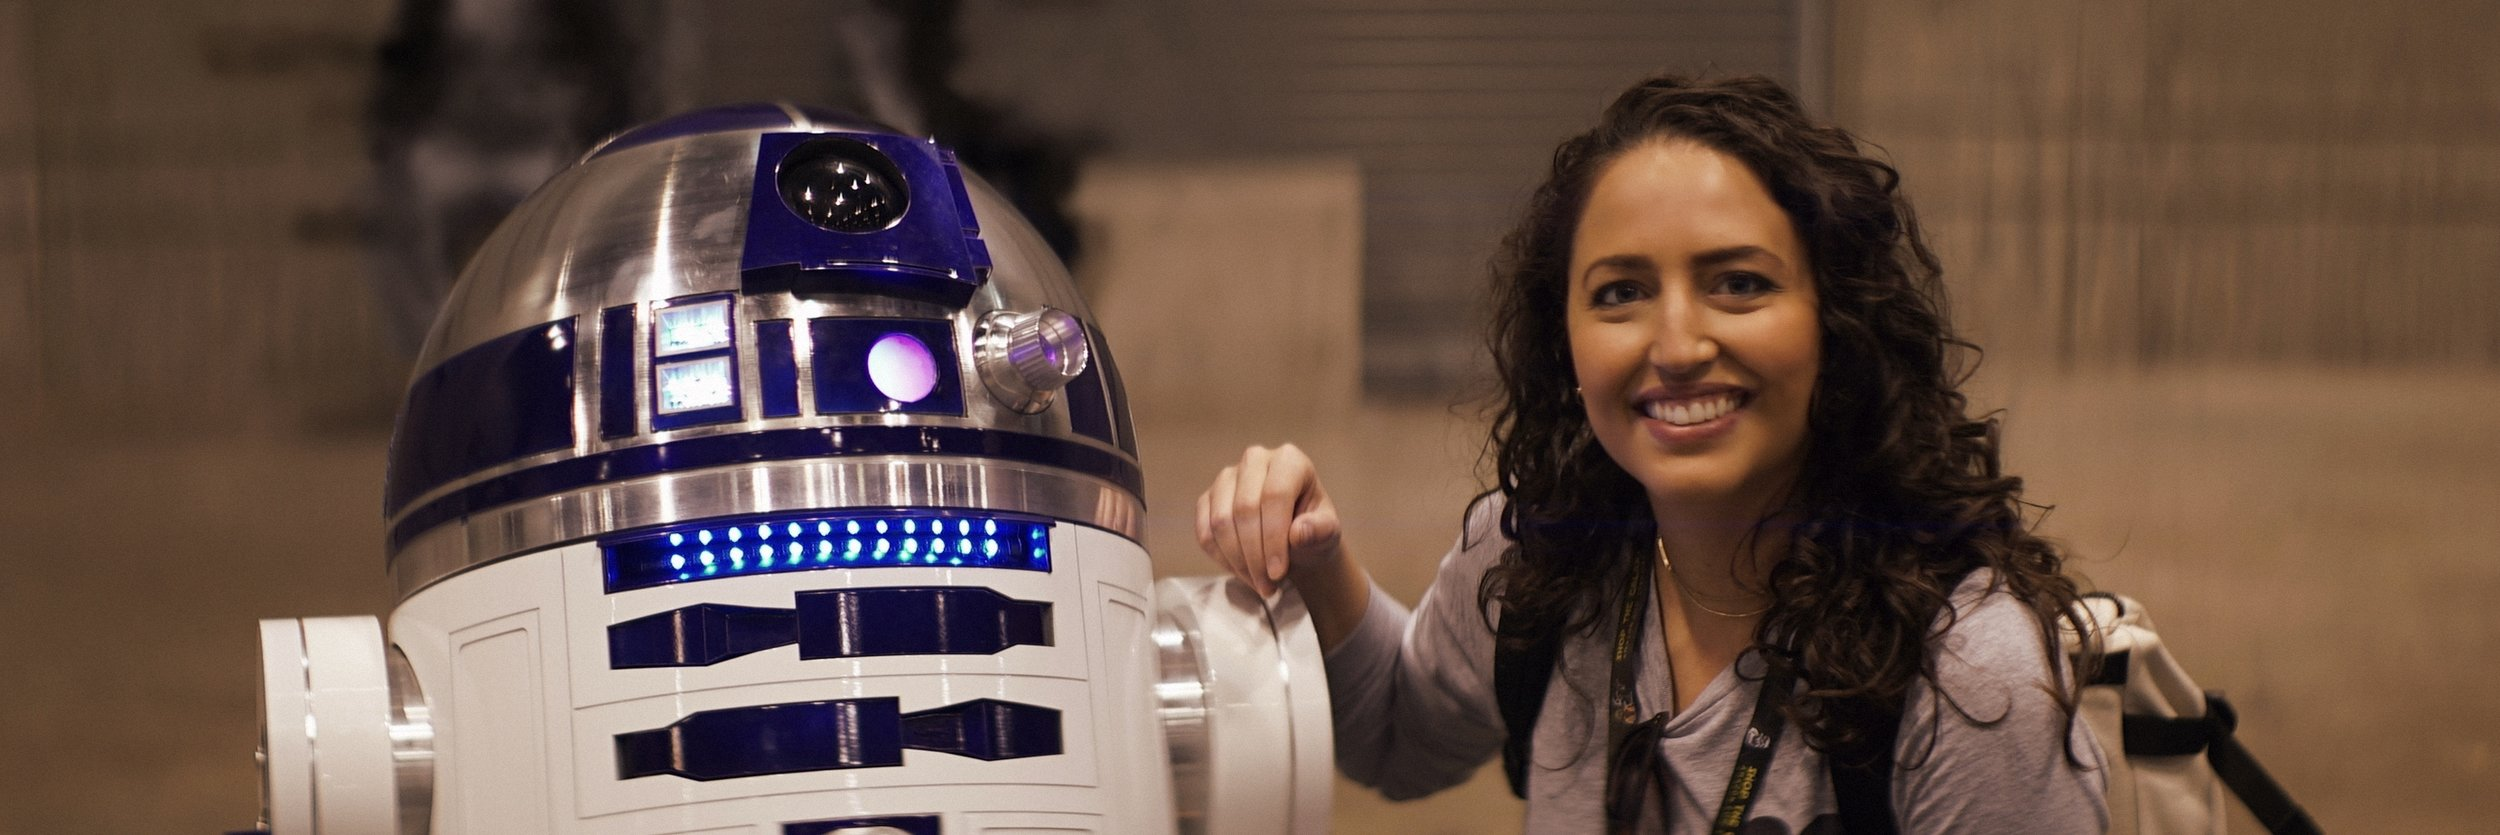 Lomo 75mm Anamorphic Lens | Star Wars Celebration Chicago - SWCC |    Olivia Otten    with R2-D2. - Photo by: Keith Nickoson